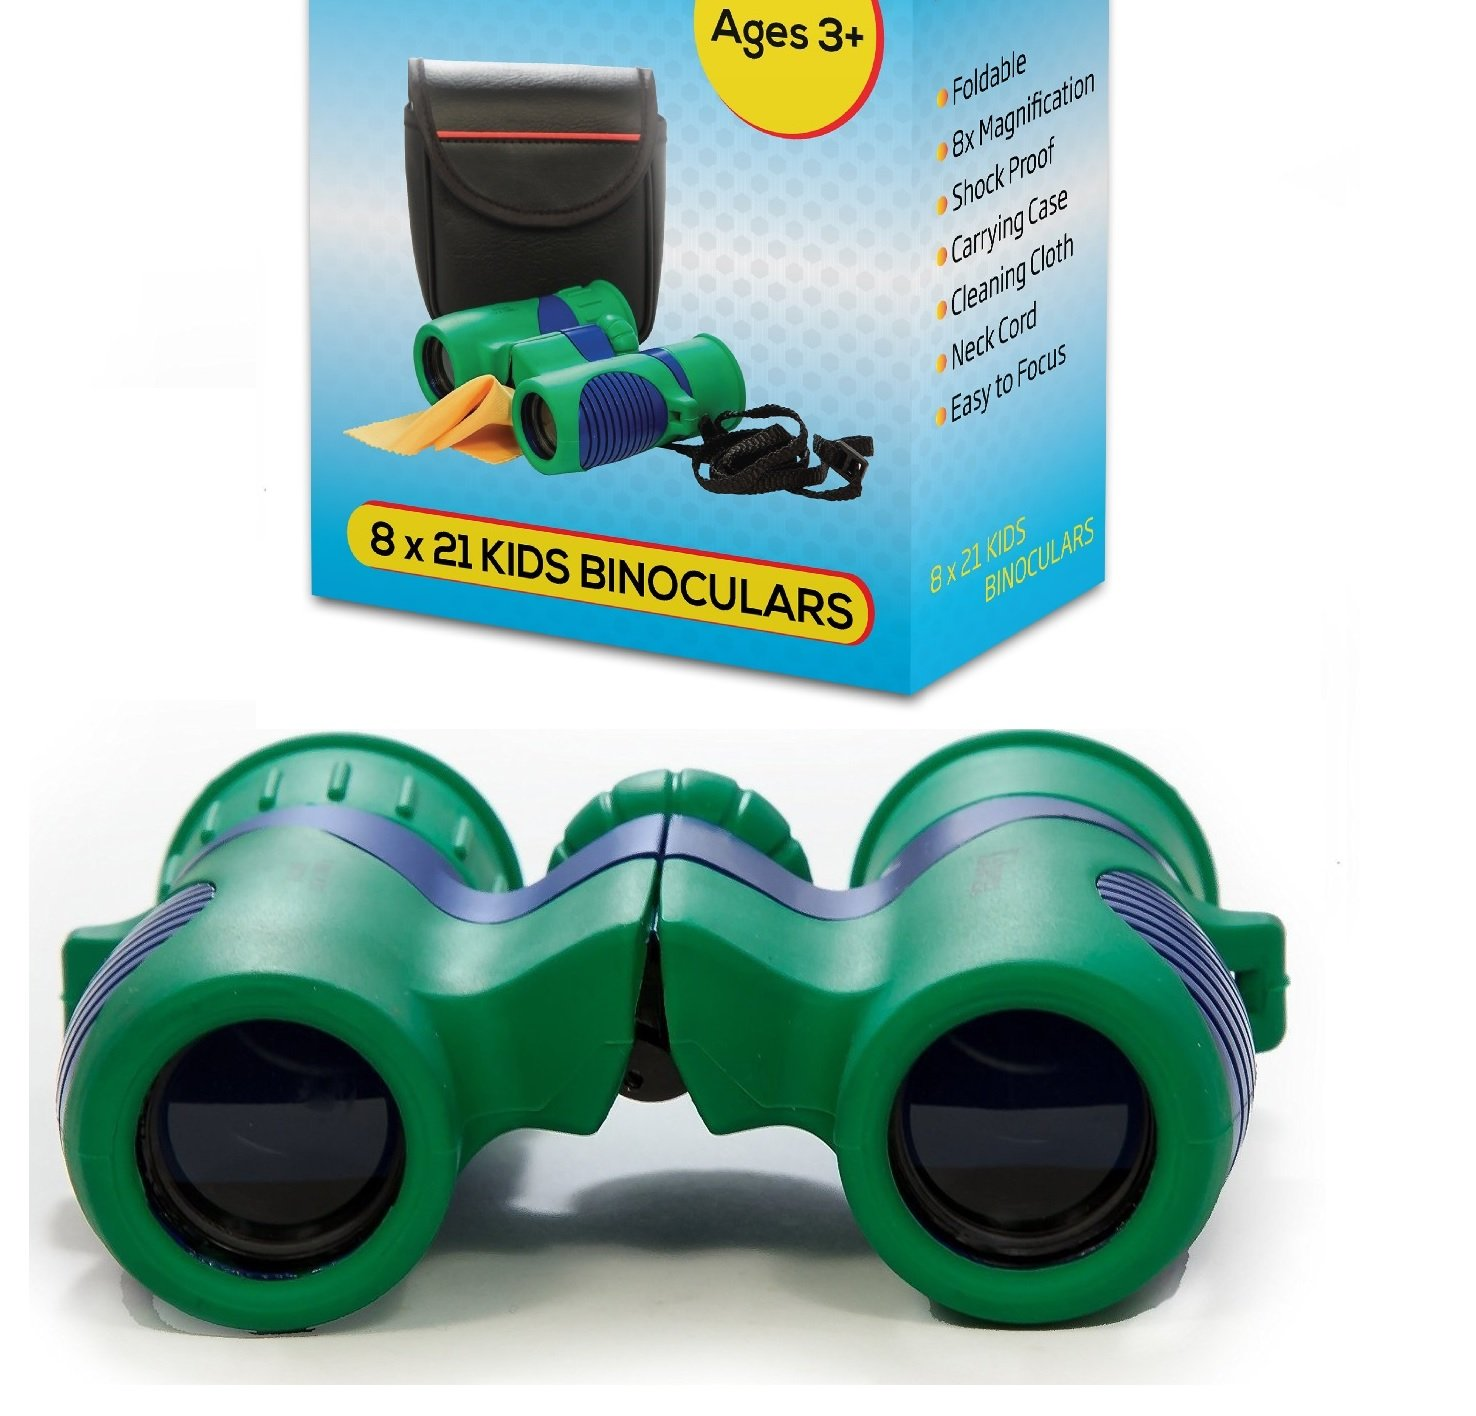 Kidwinz Shock Proof 8x21 Kids Binoculars Set High Resolution Real Optics